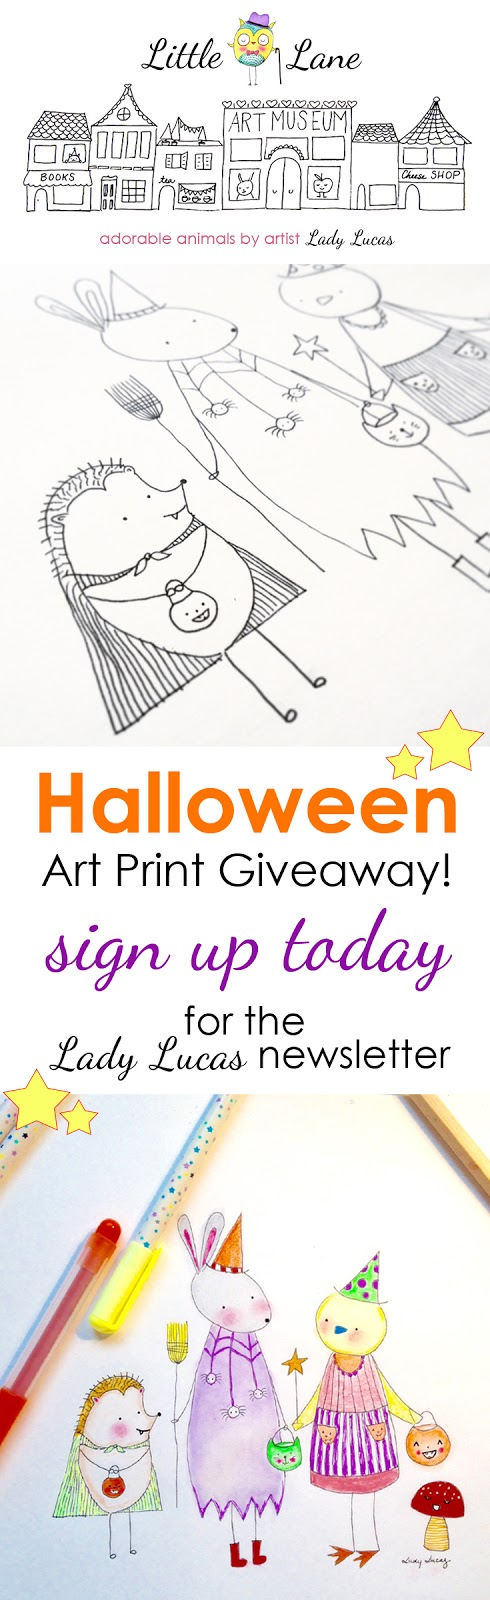 Free Halloween Little Owl Lane Print Giveaway